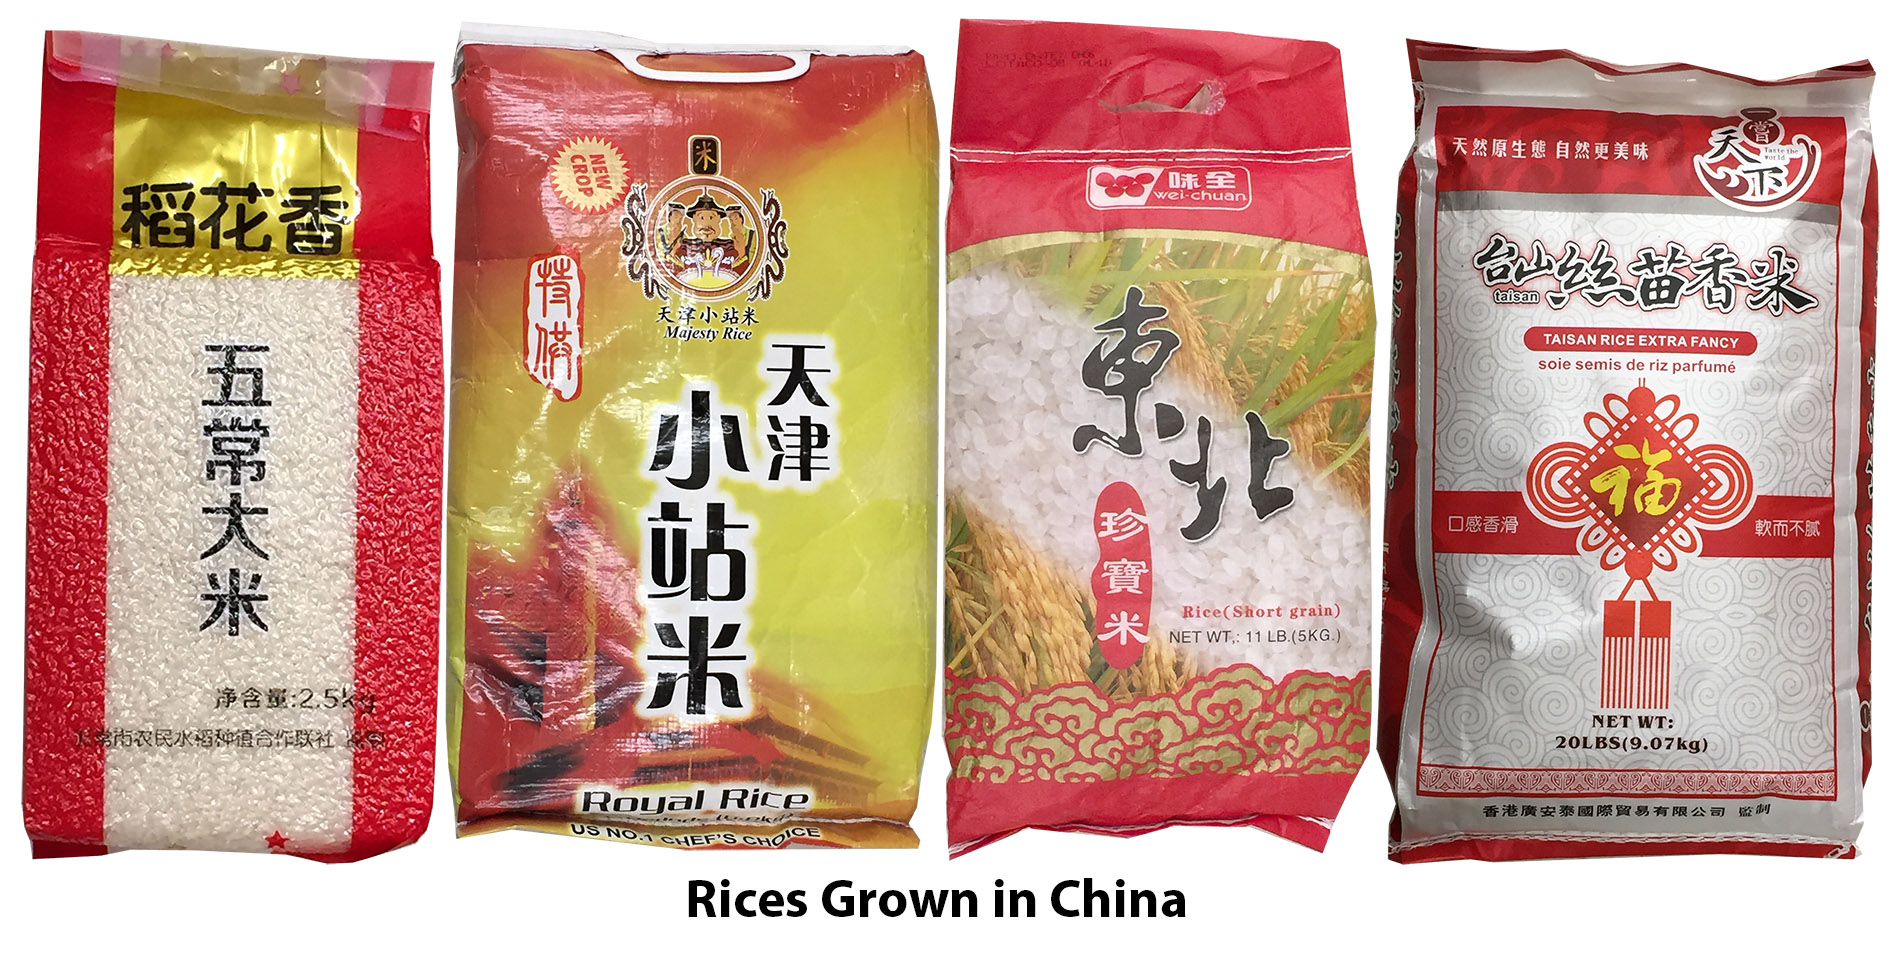 Chinese White Rices in US Supermarkets